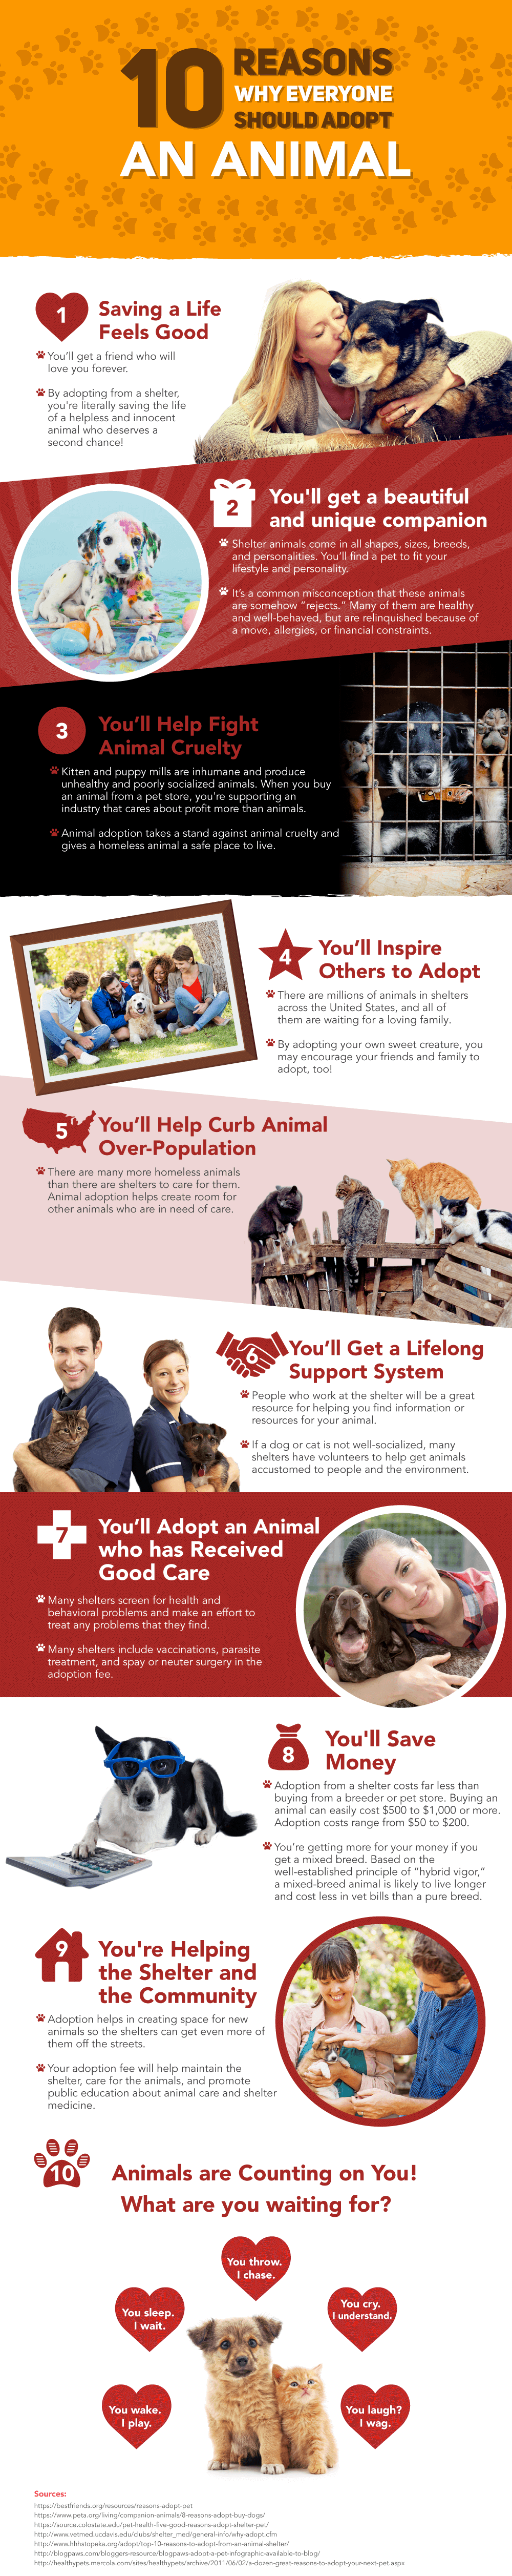 image of a infographic listing reasons to adopt an animal